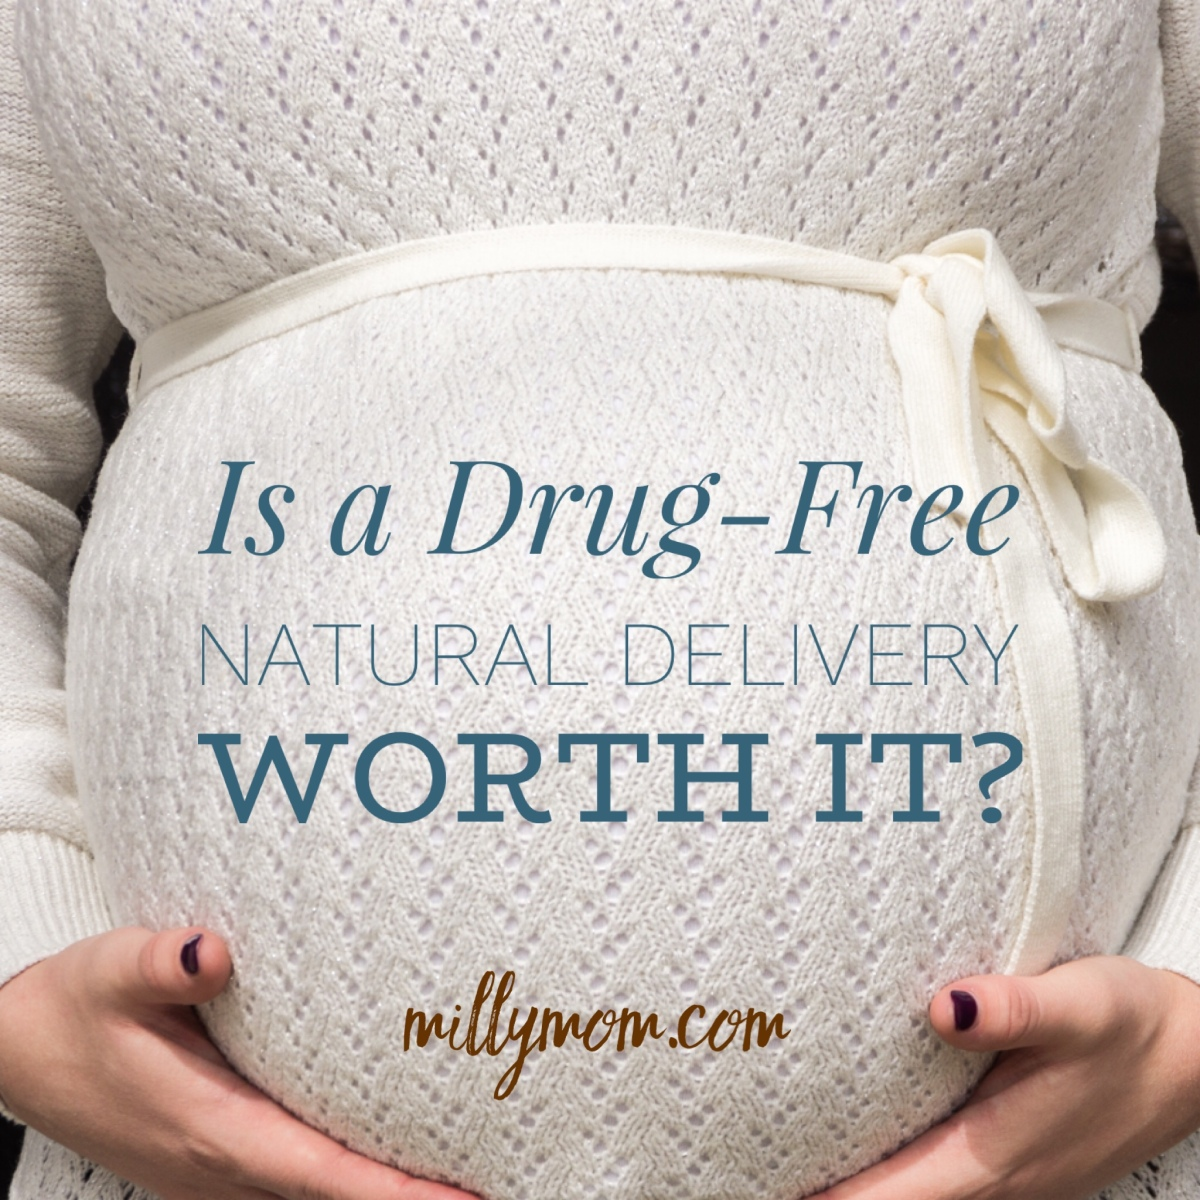 Is a Drug-Free Natural Delivery Worth It?